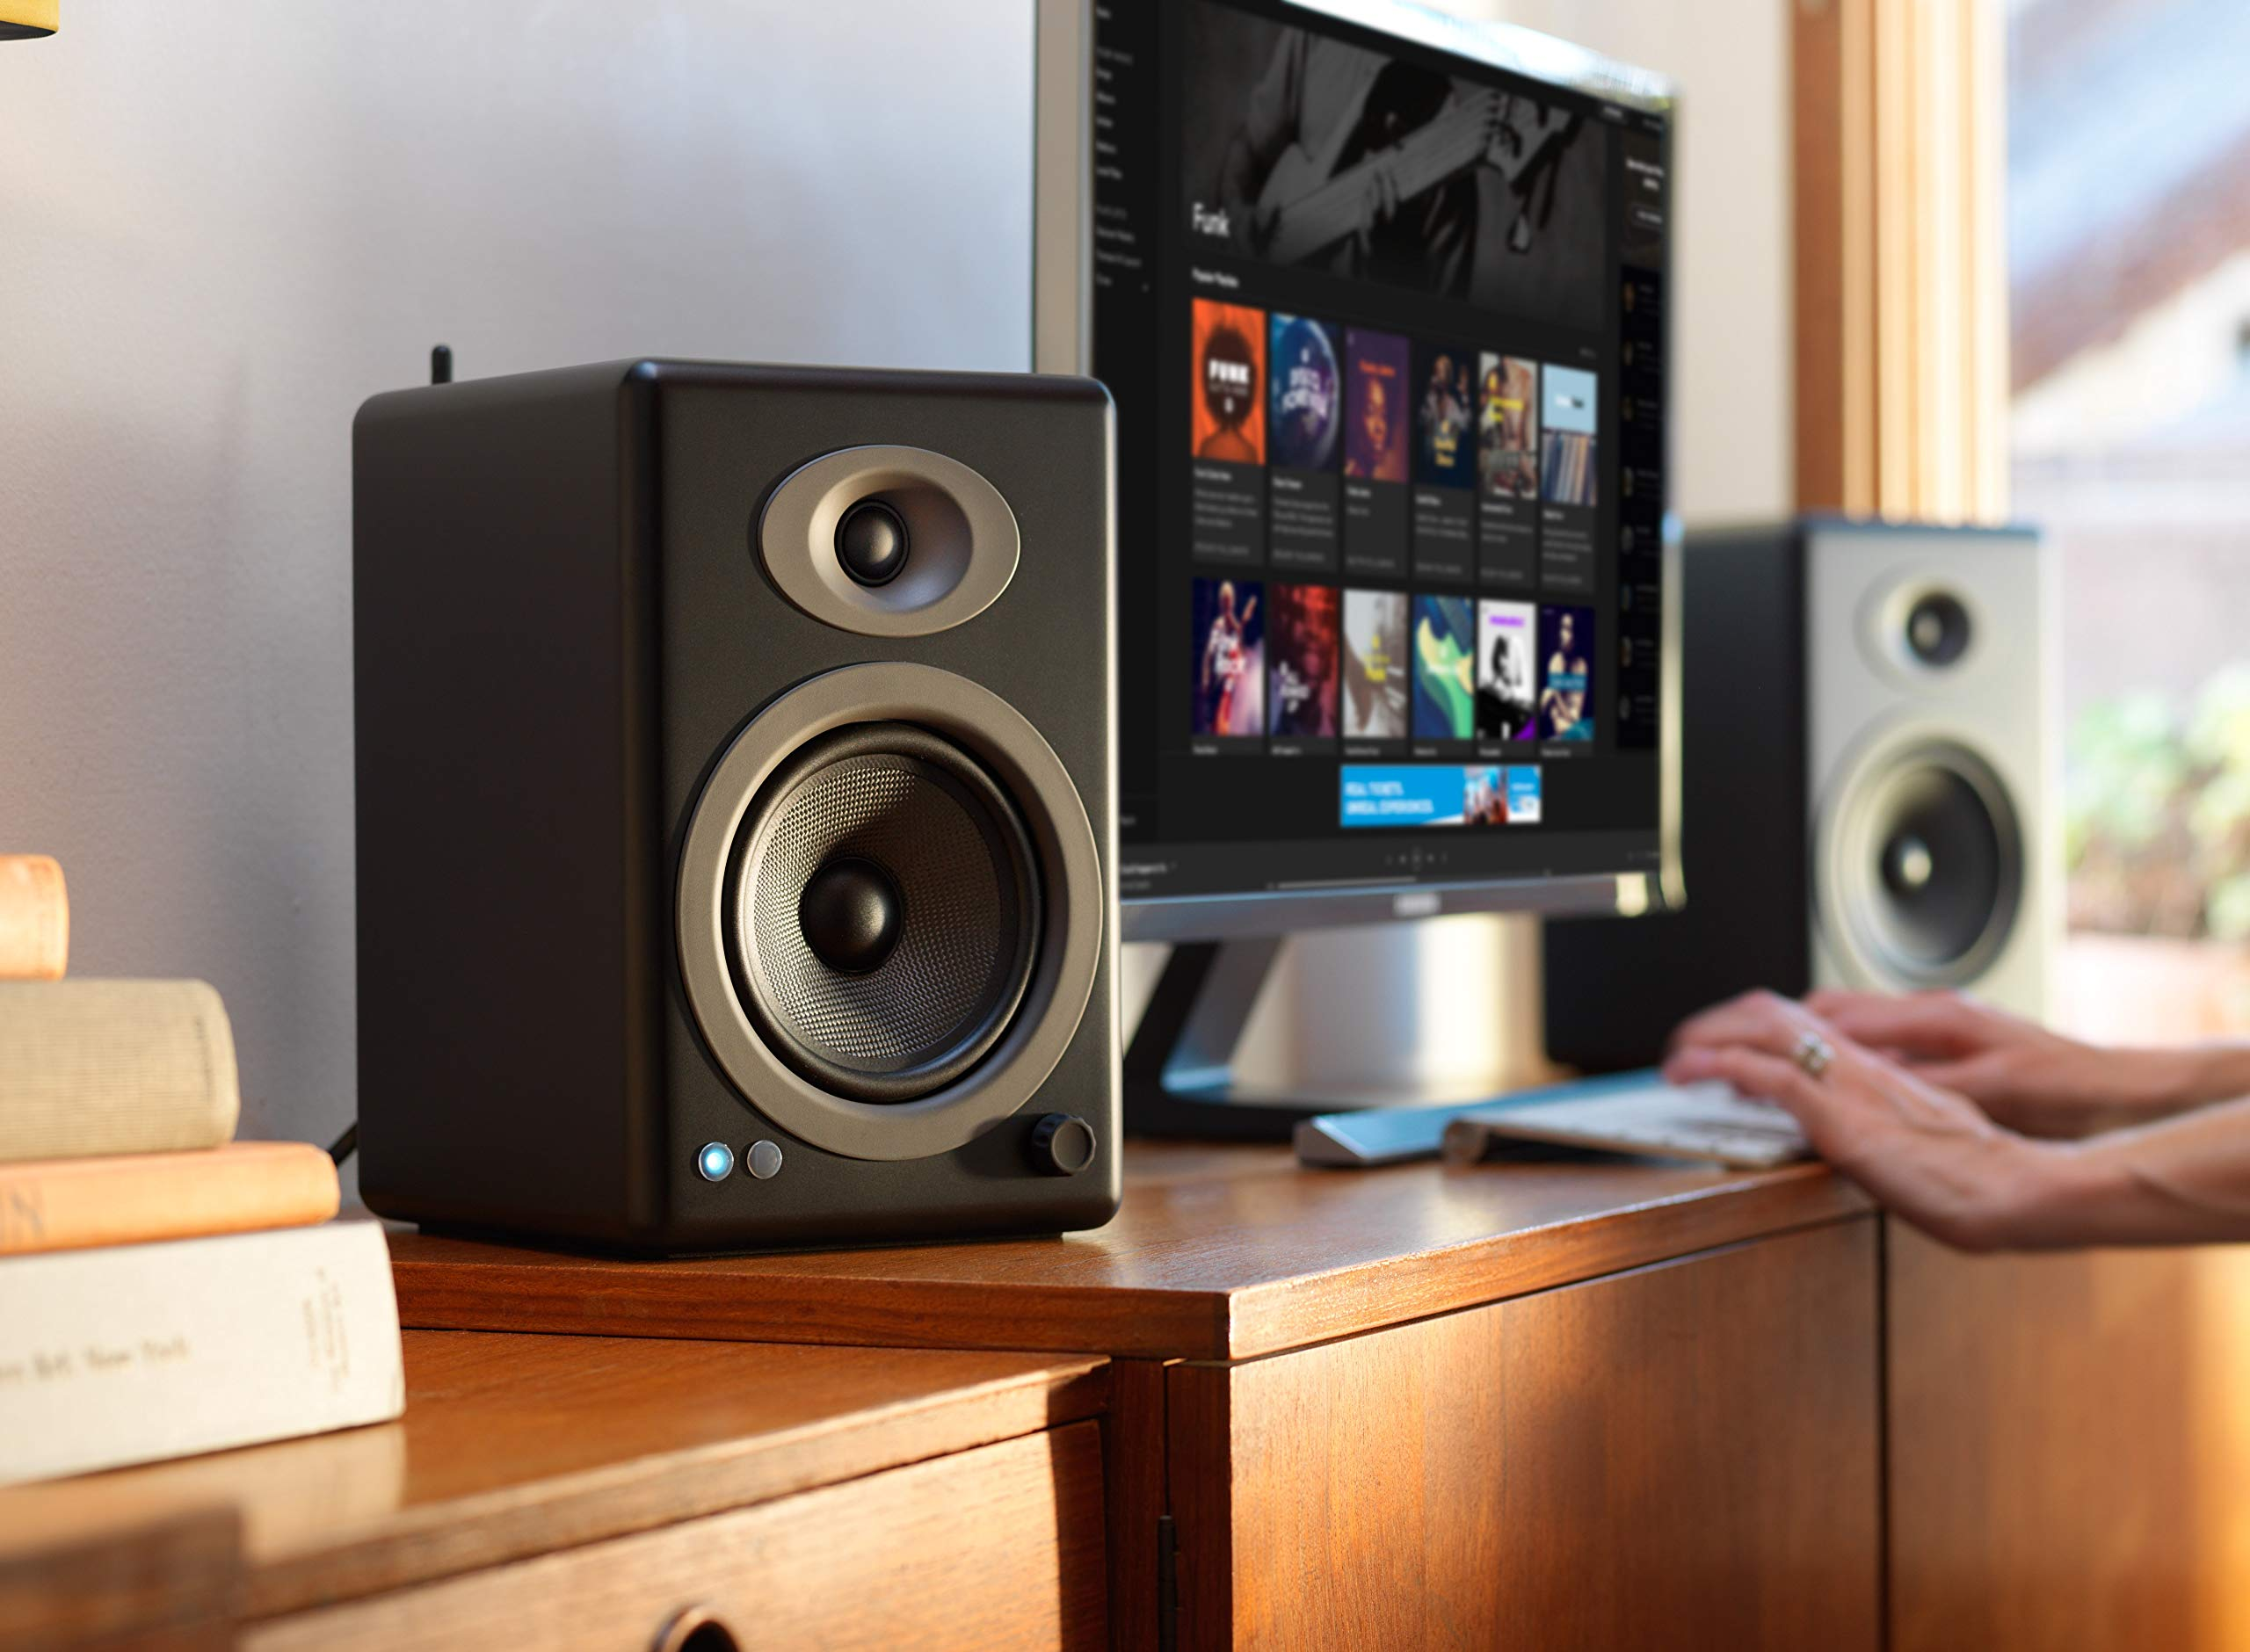 Audioengine A5+ 150W Wireless Powered Bookshelf Speakers   Built-in Analog Amplifier   aptX HD Bluetooth 24 Bit DAC, RCA and 3.5mm inputs   Solid Aluminium Remote Control   Cables Included by Audioengine (Image #6)